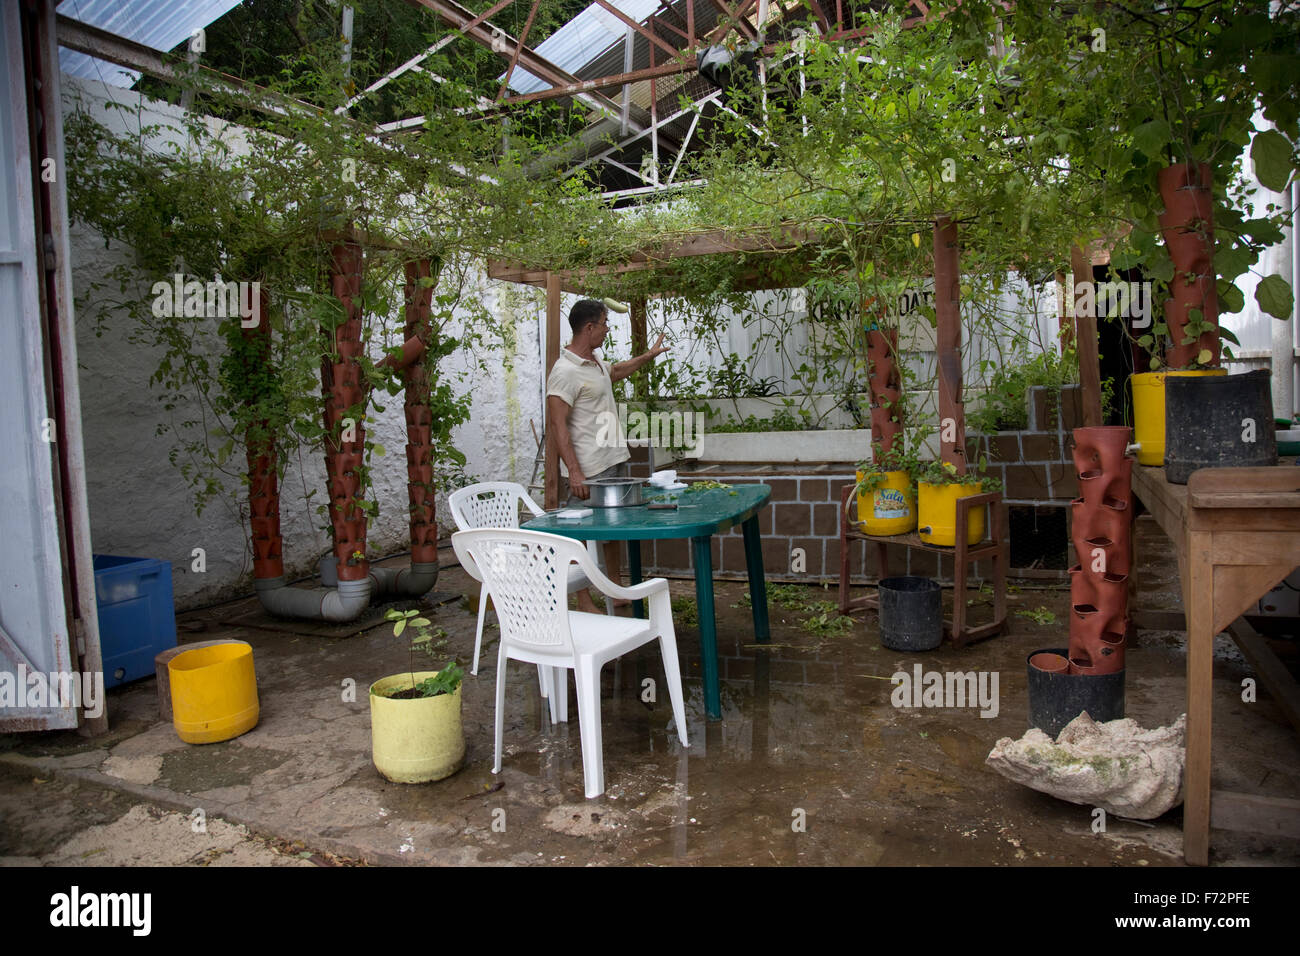 Sustainable self-sustaining vegetable growing involving a natural cycle with tilapia fish and chickens in confined - Stock Image